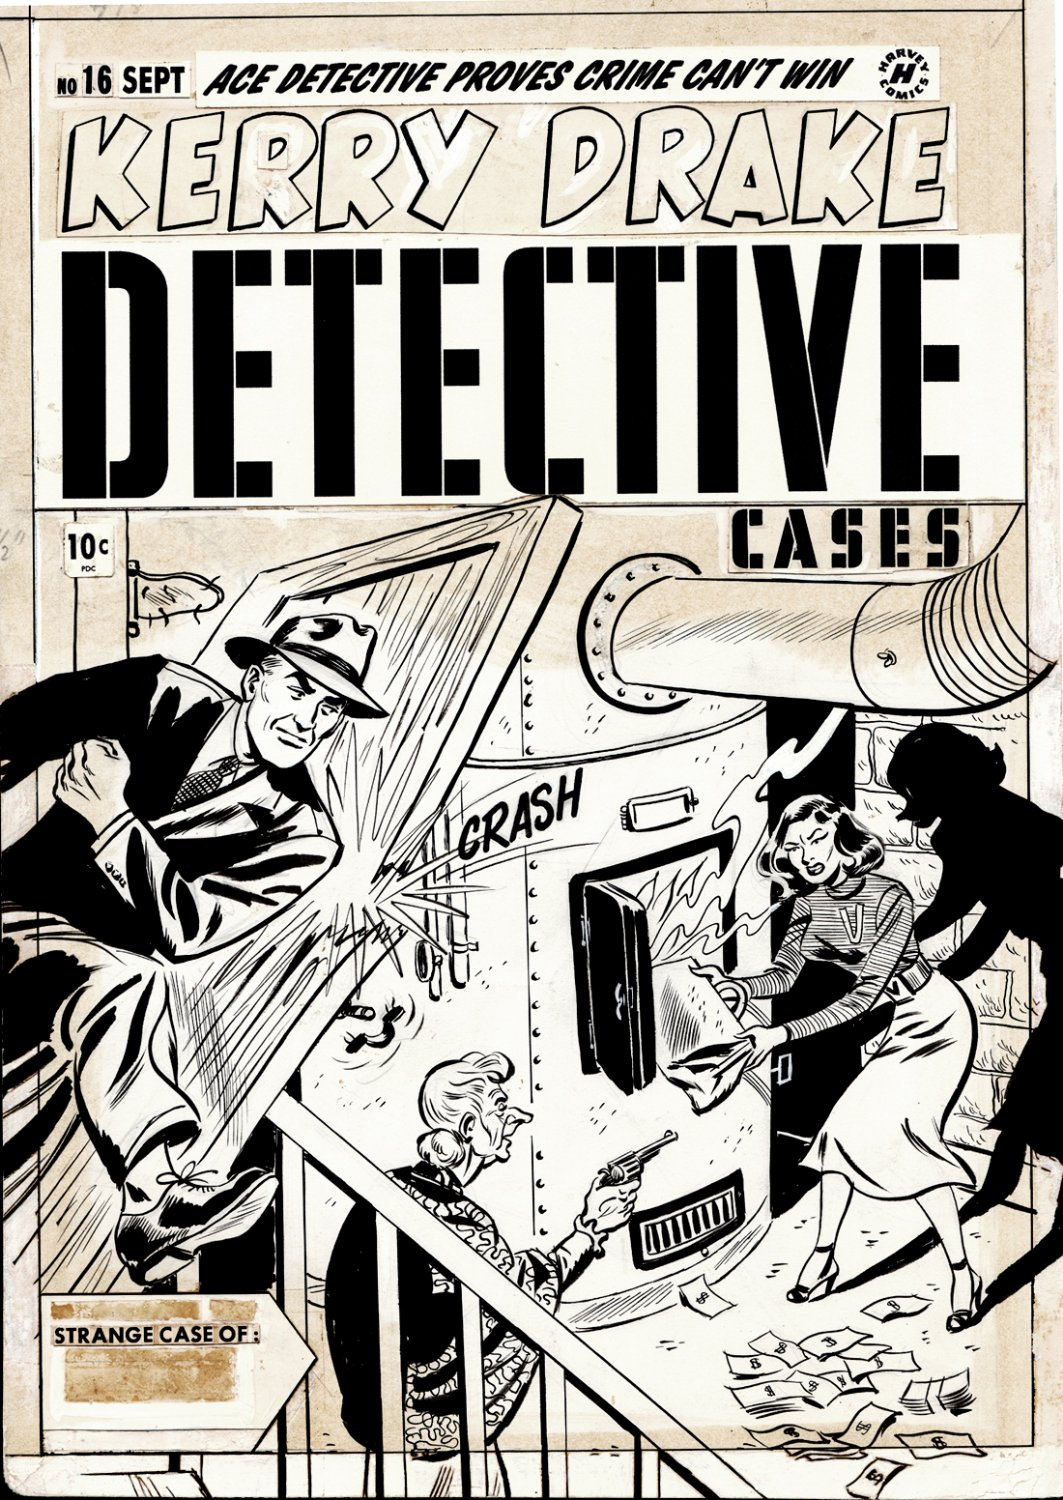 Kerry Drake Detective Cases #16 Cover (SOLD LIVE ON THE ROMITAMAN ART DROP PODCAST ON 10-9-2021)